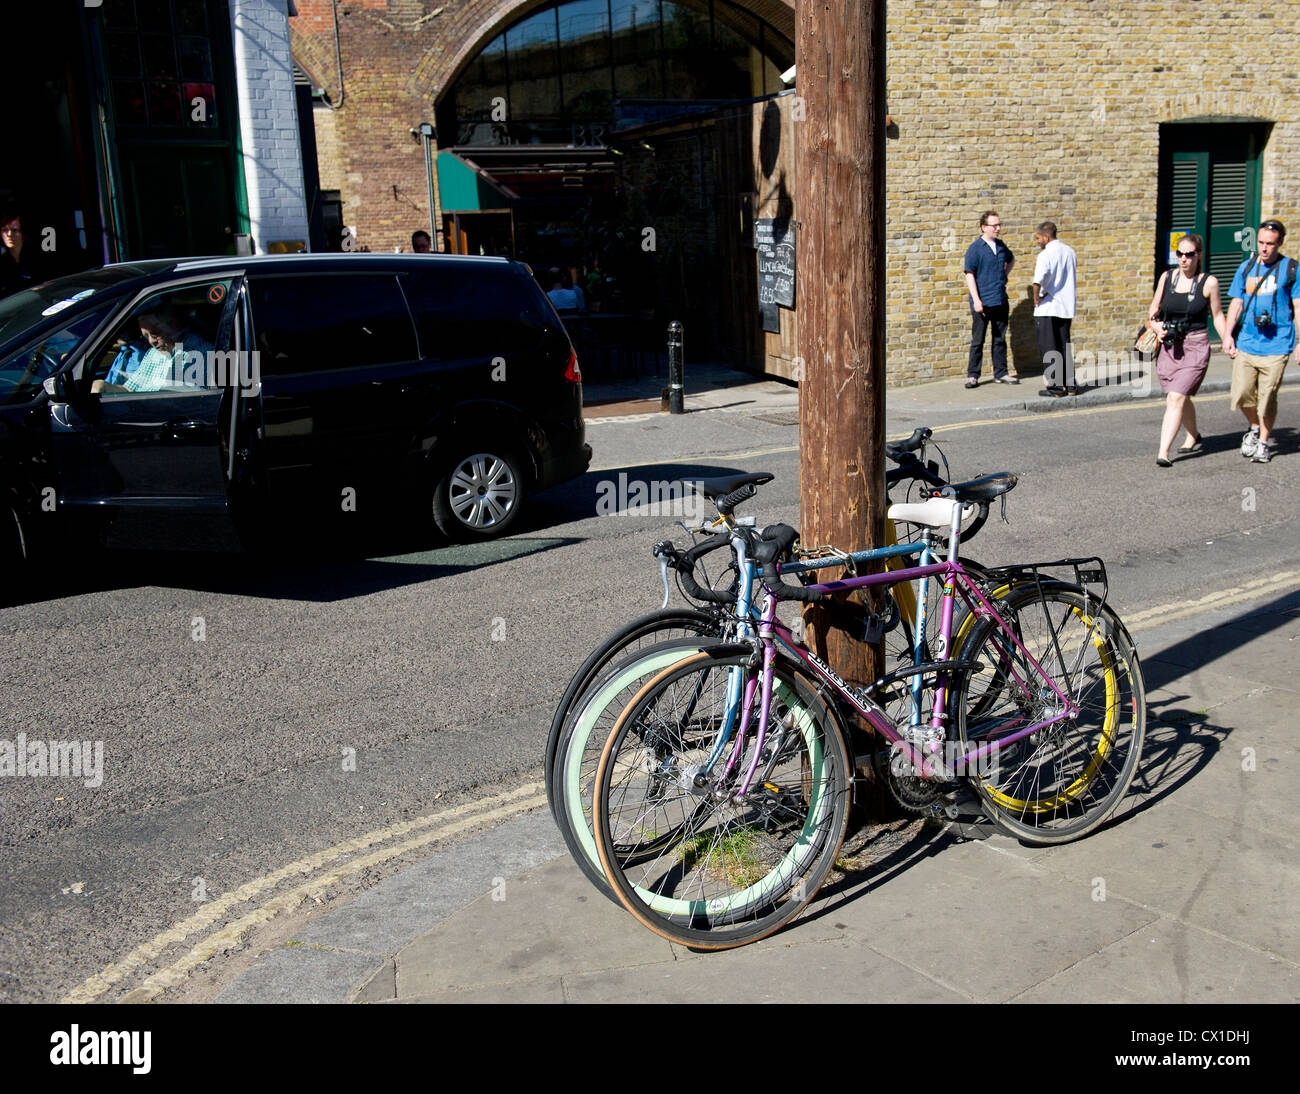 Bicycles secured to a wooden telegraph pole - Stock Image